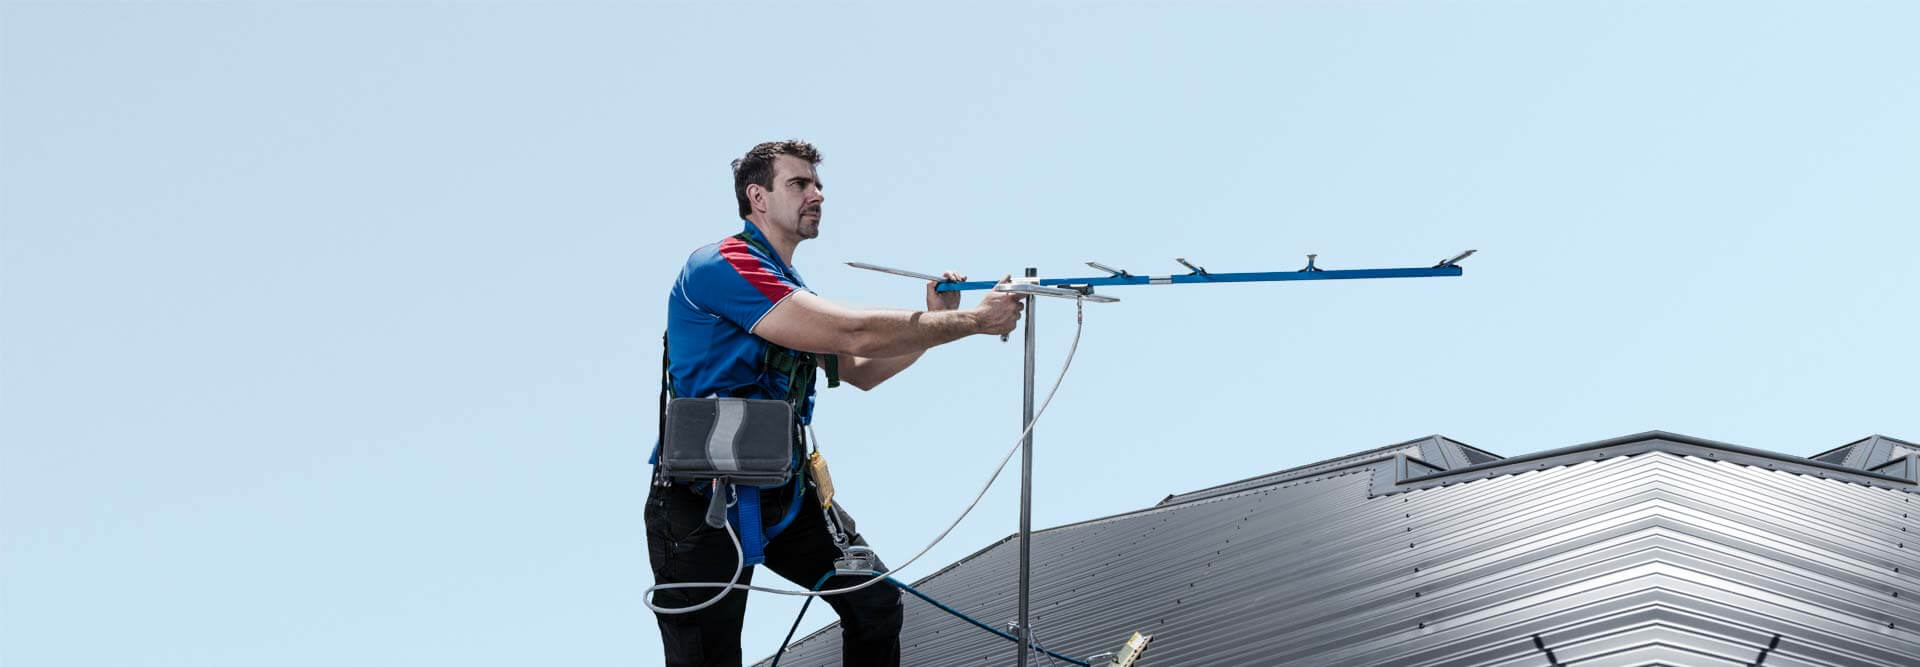 What are the points that need to remember at installing the antenna?